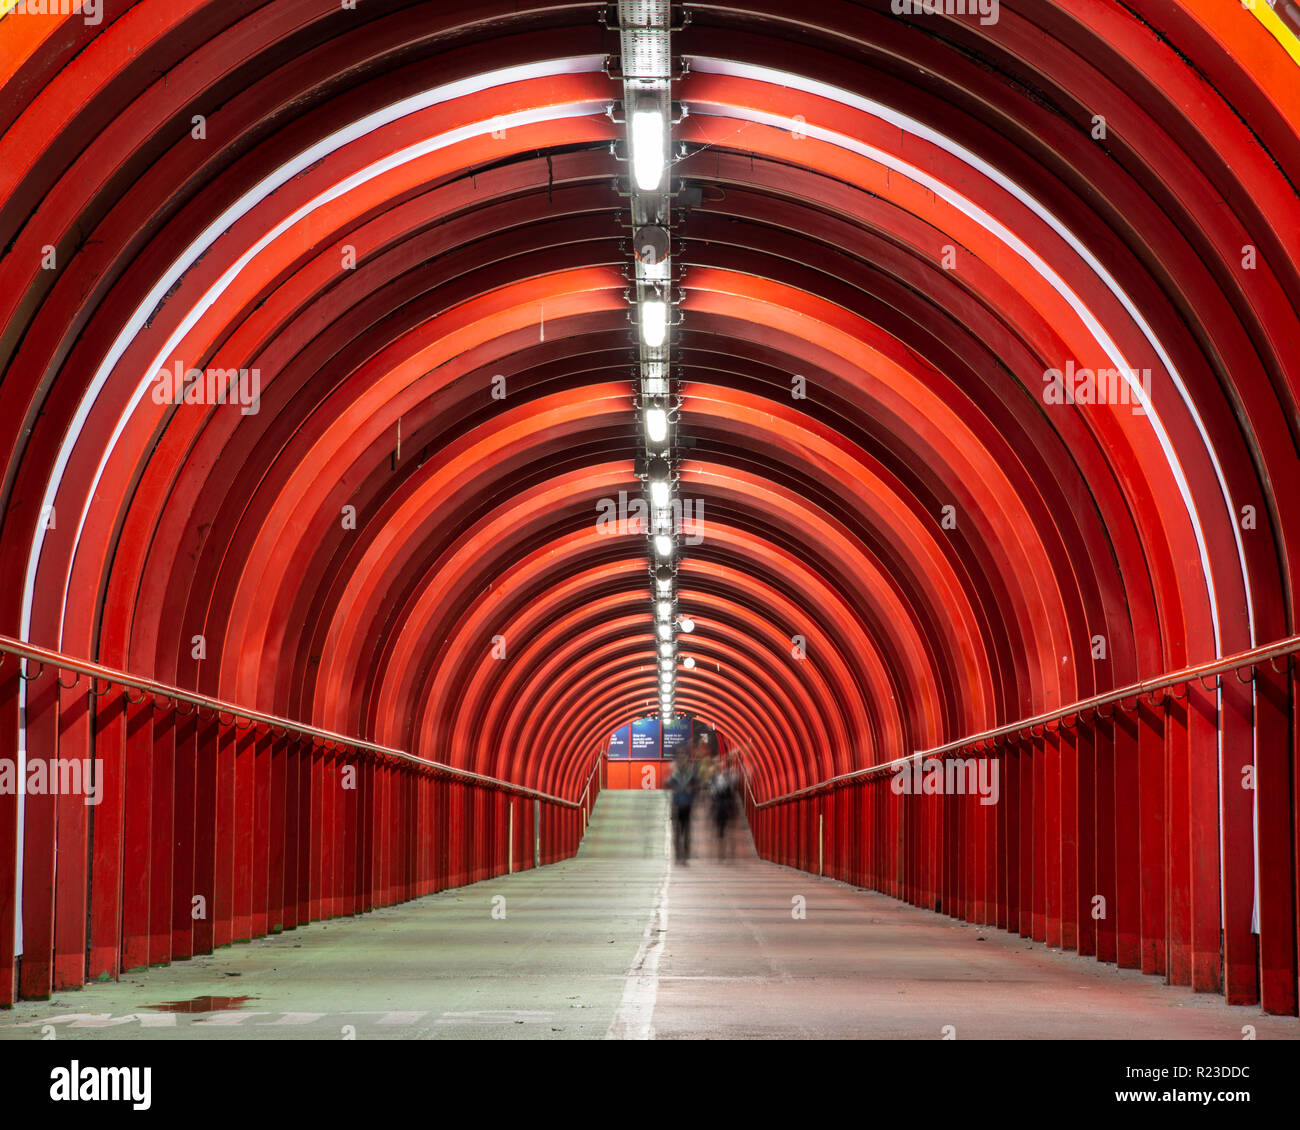 Glasgow, Scotland, UK - November 4, 2018: Pedestrians walk through a bright red covered walkway linking the Scottish Event Campus to Exhibition Centre - Stock Image